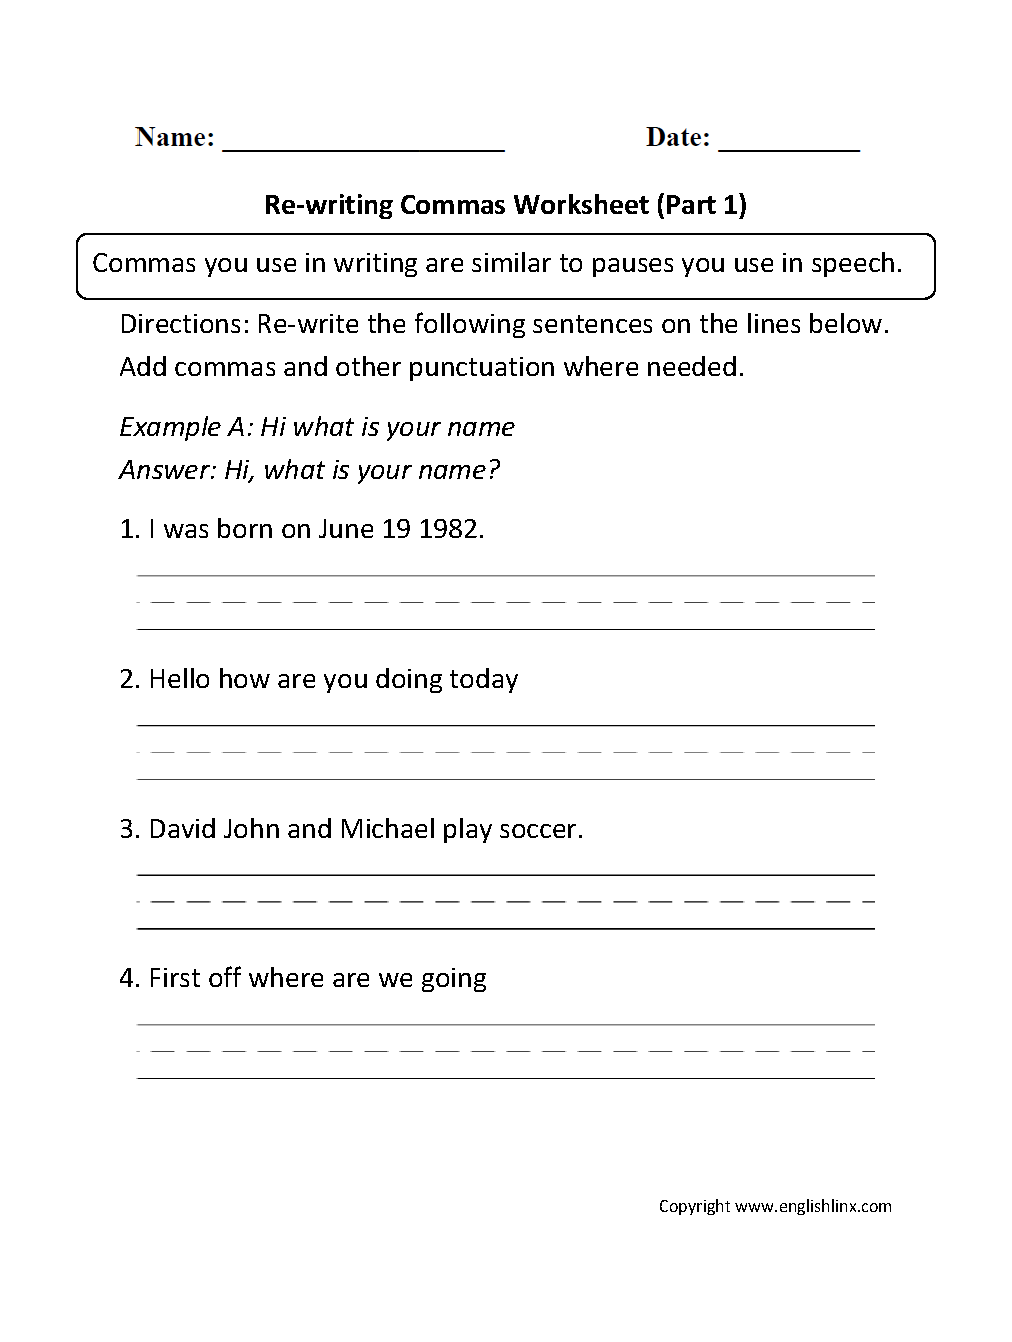 Commas Worksheets Re Writing Commas Worksheets Part 1 Language Worksheets Paragraph Writing Worksheets Punctuation Worksheets [ 1342 x 1012 Pixel ]